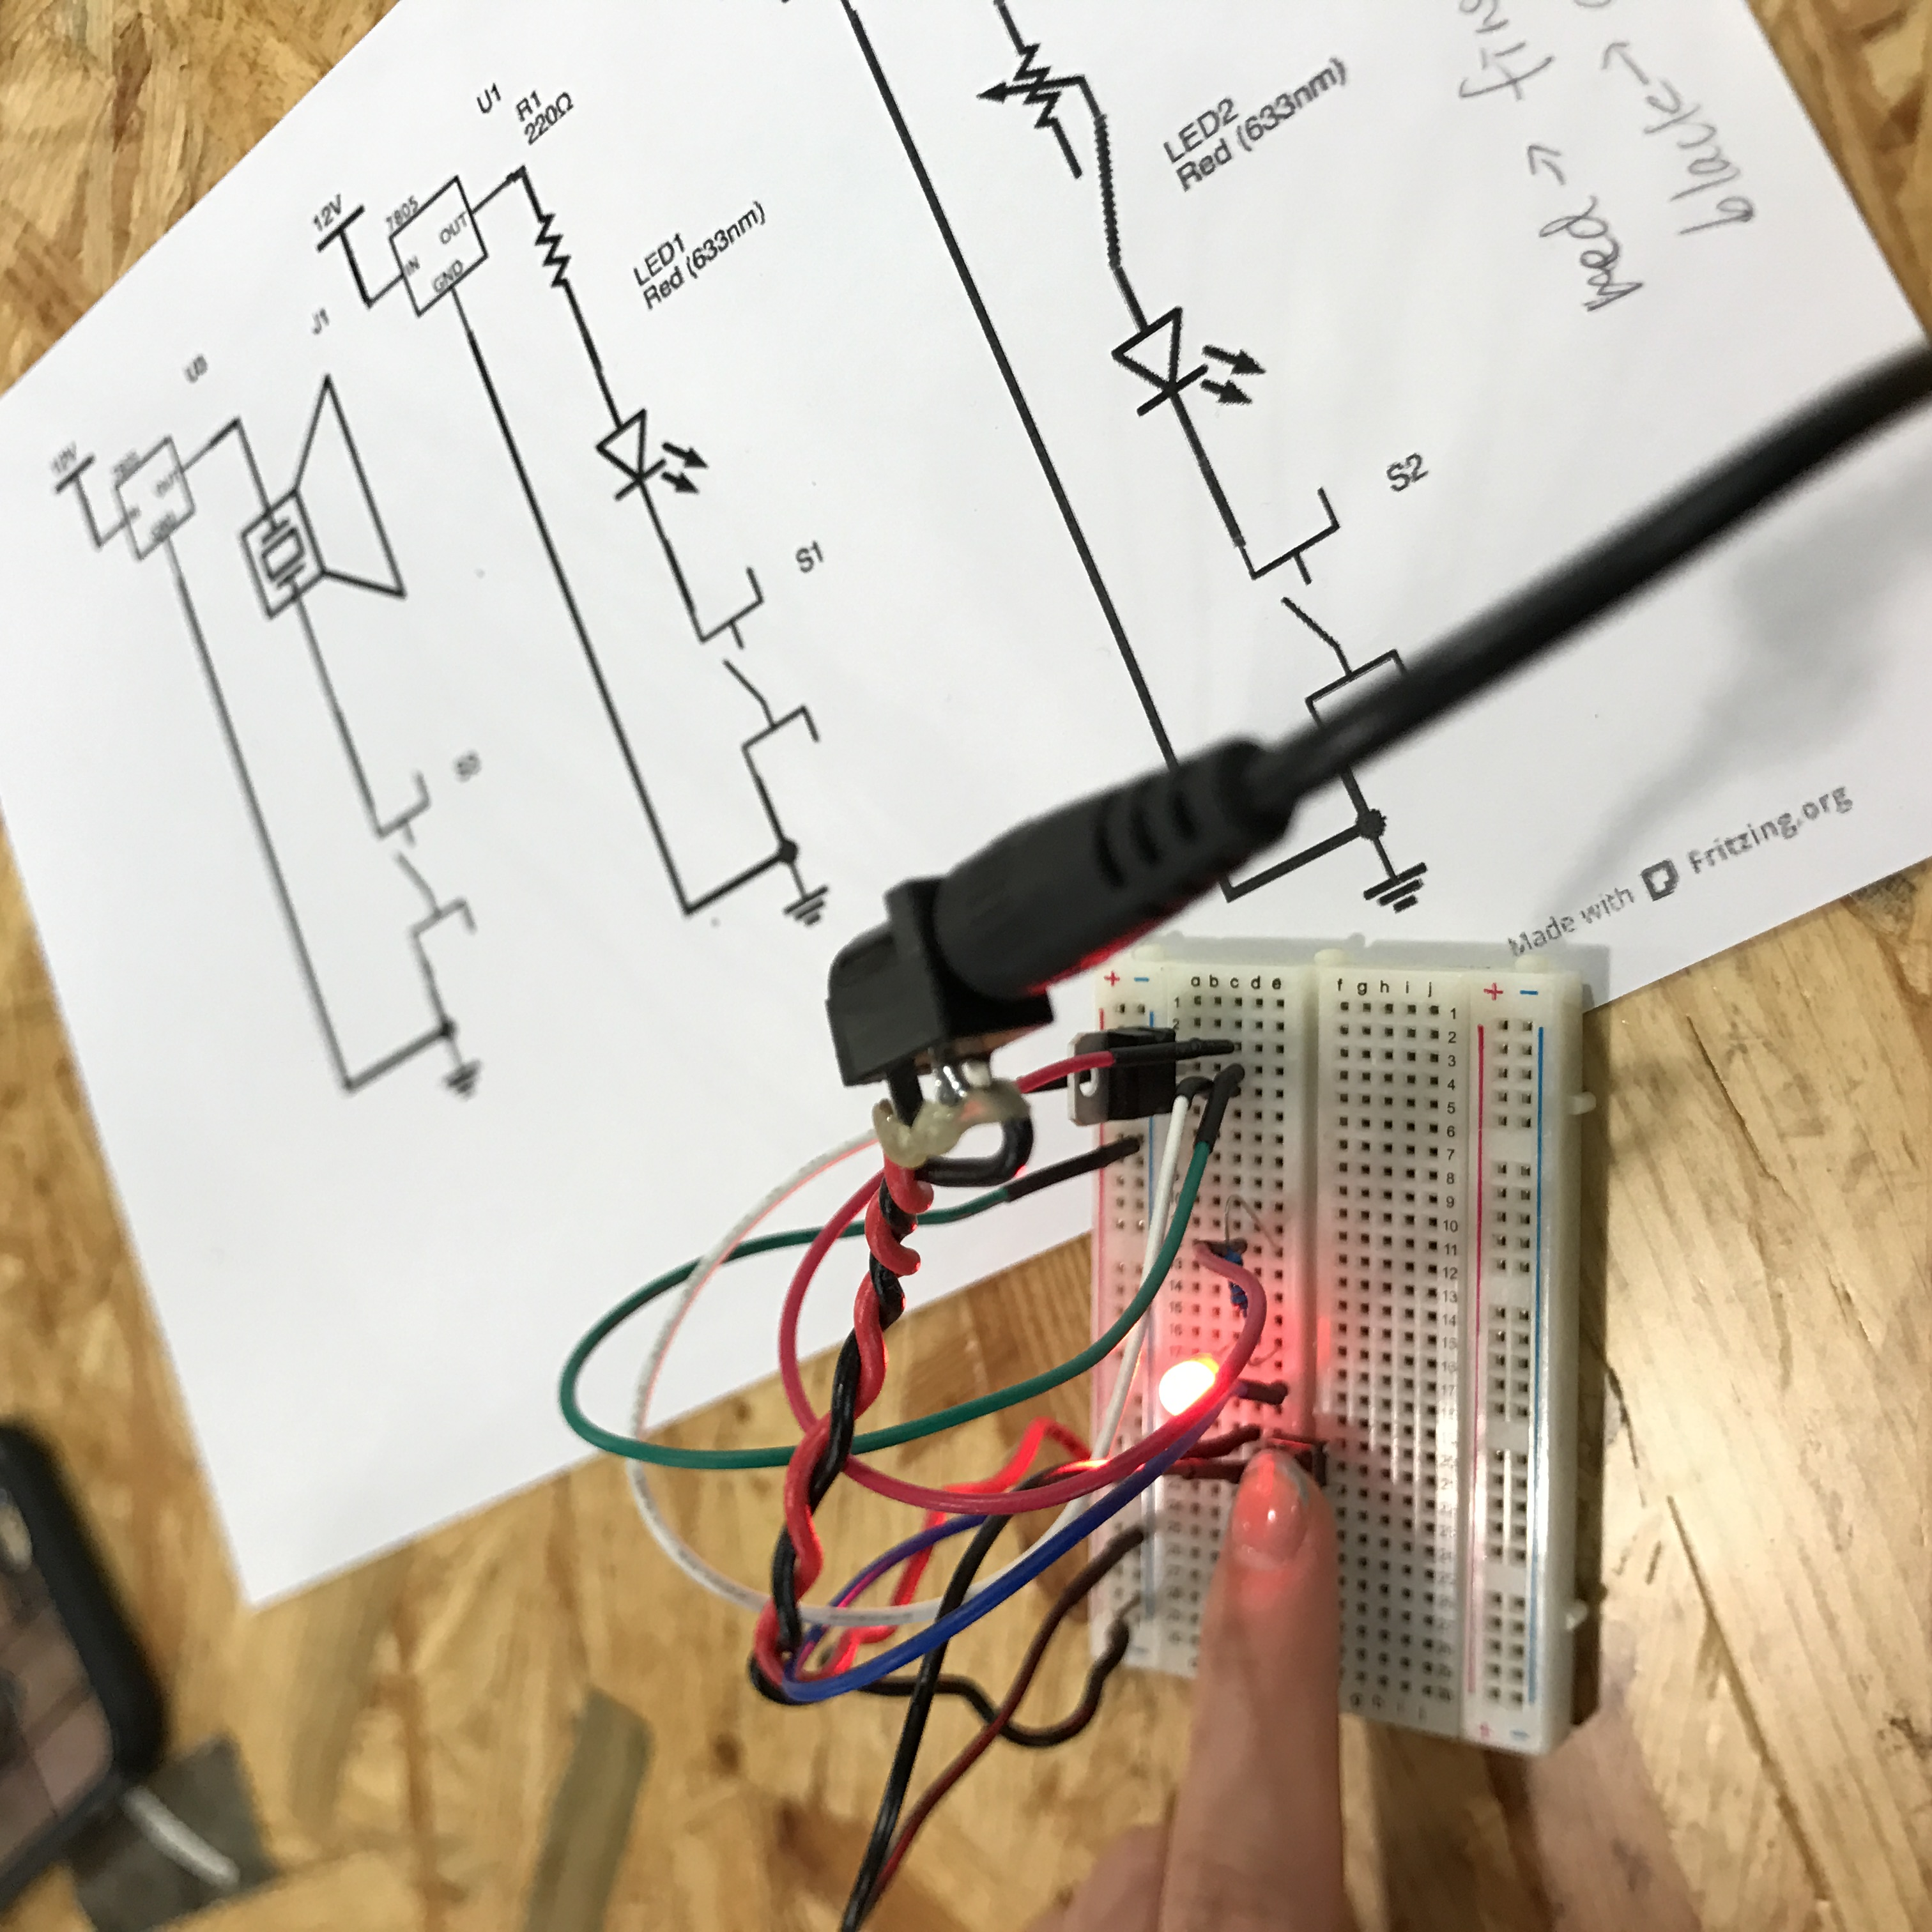 Ima Interaction Lab The Circuit Is Very Simple It Just 2 Leds Switches In This Exercise We Thought Did Everything Right But Led Could Not Work Eventually Found Problem That Put Switch Wrong